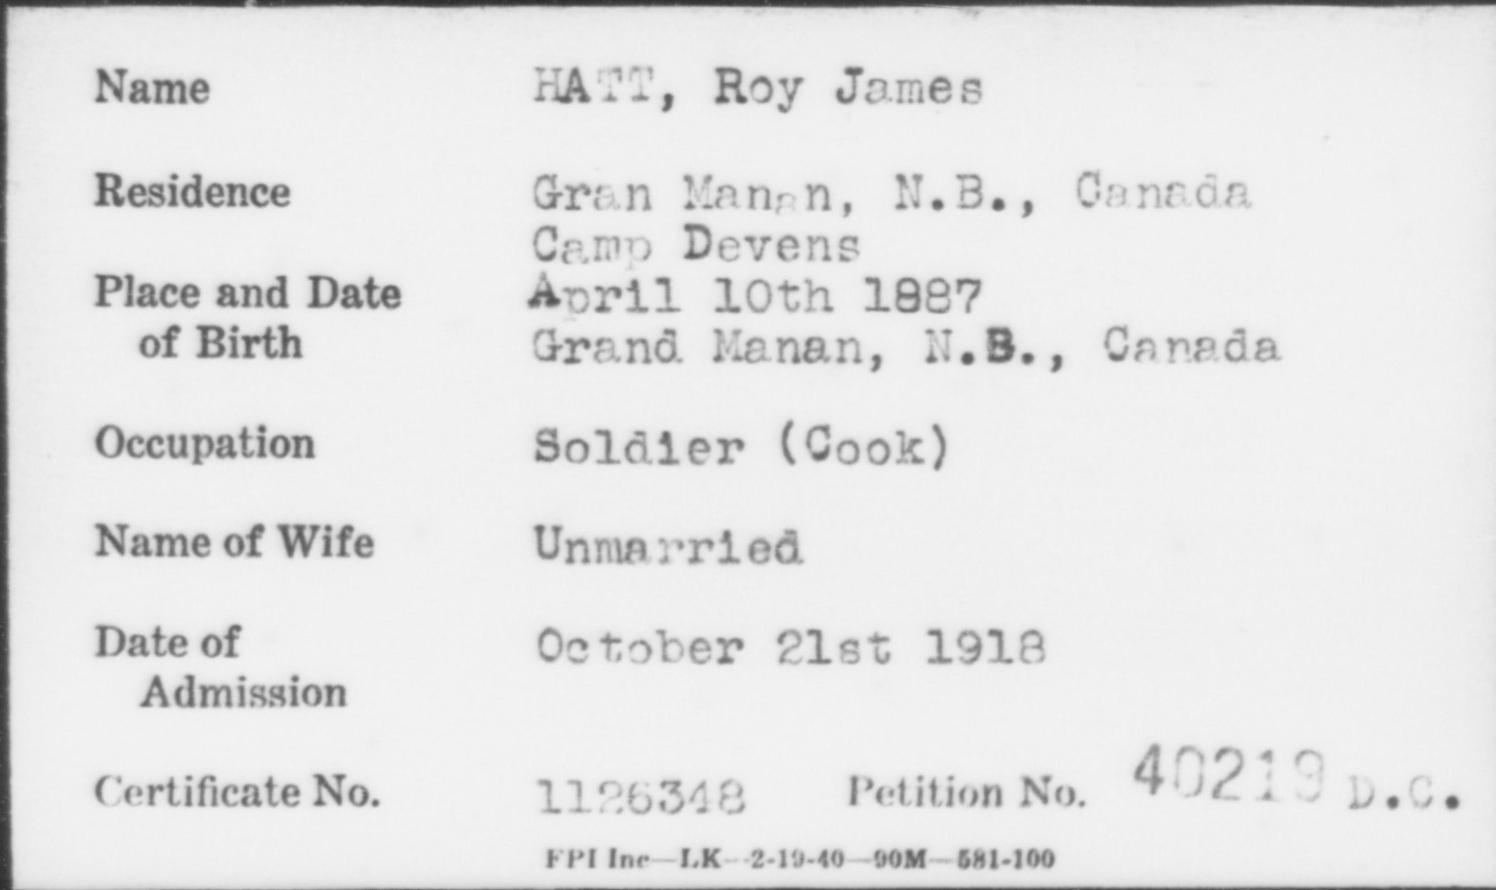 HATT, Roy James